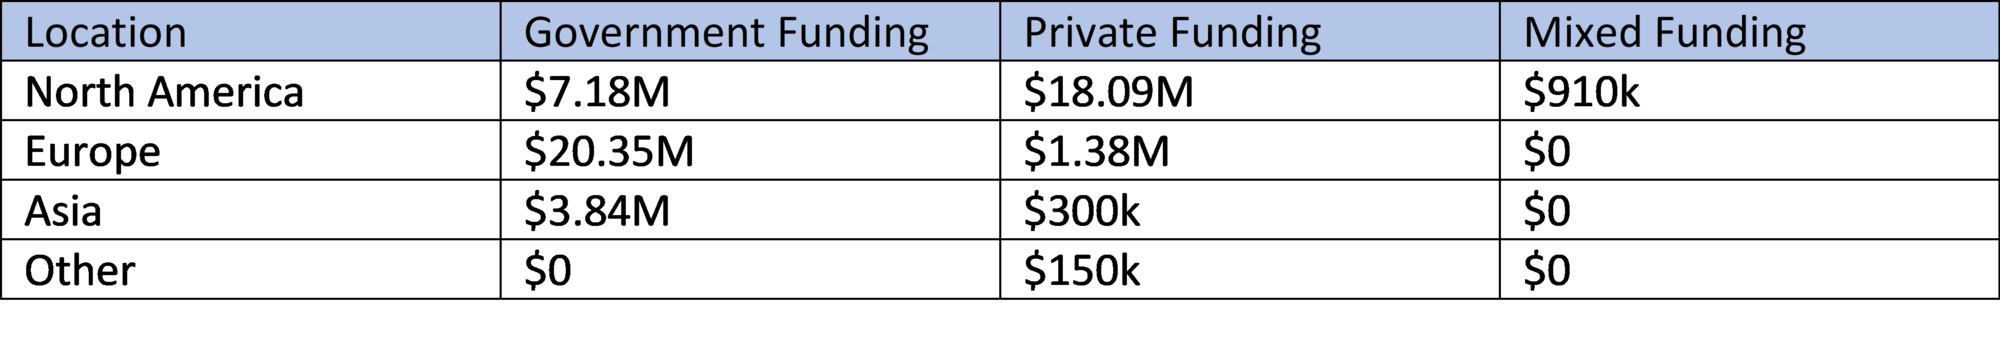 Funding Sources by Location